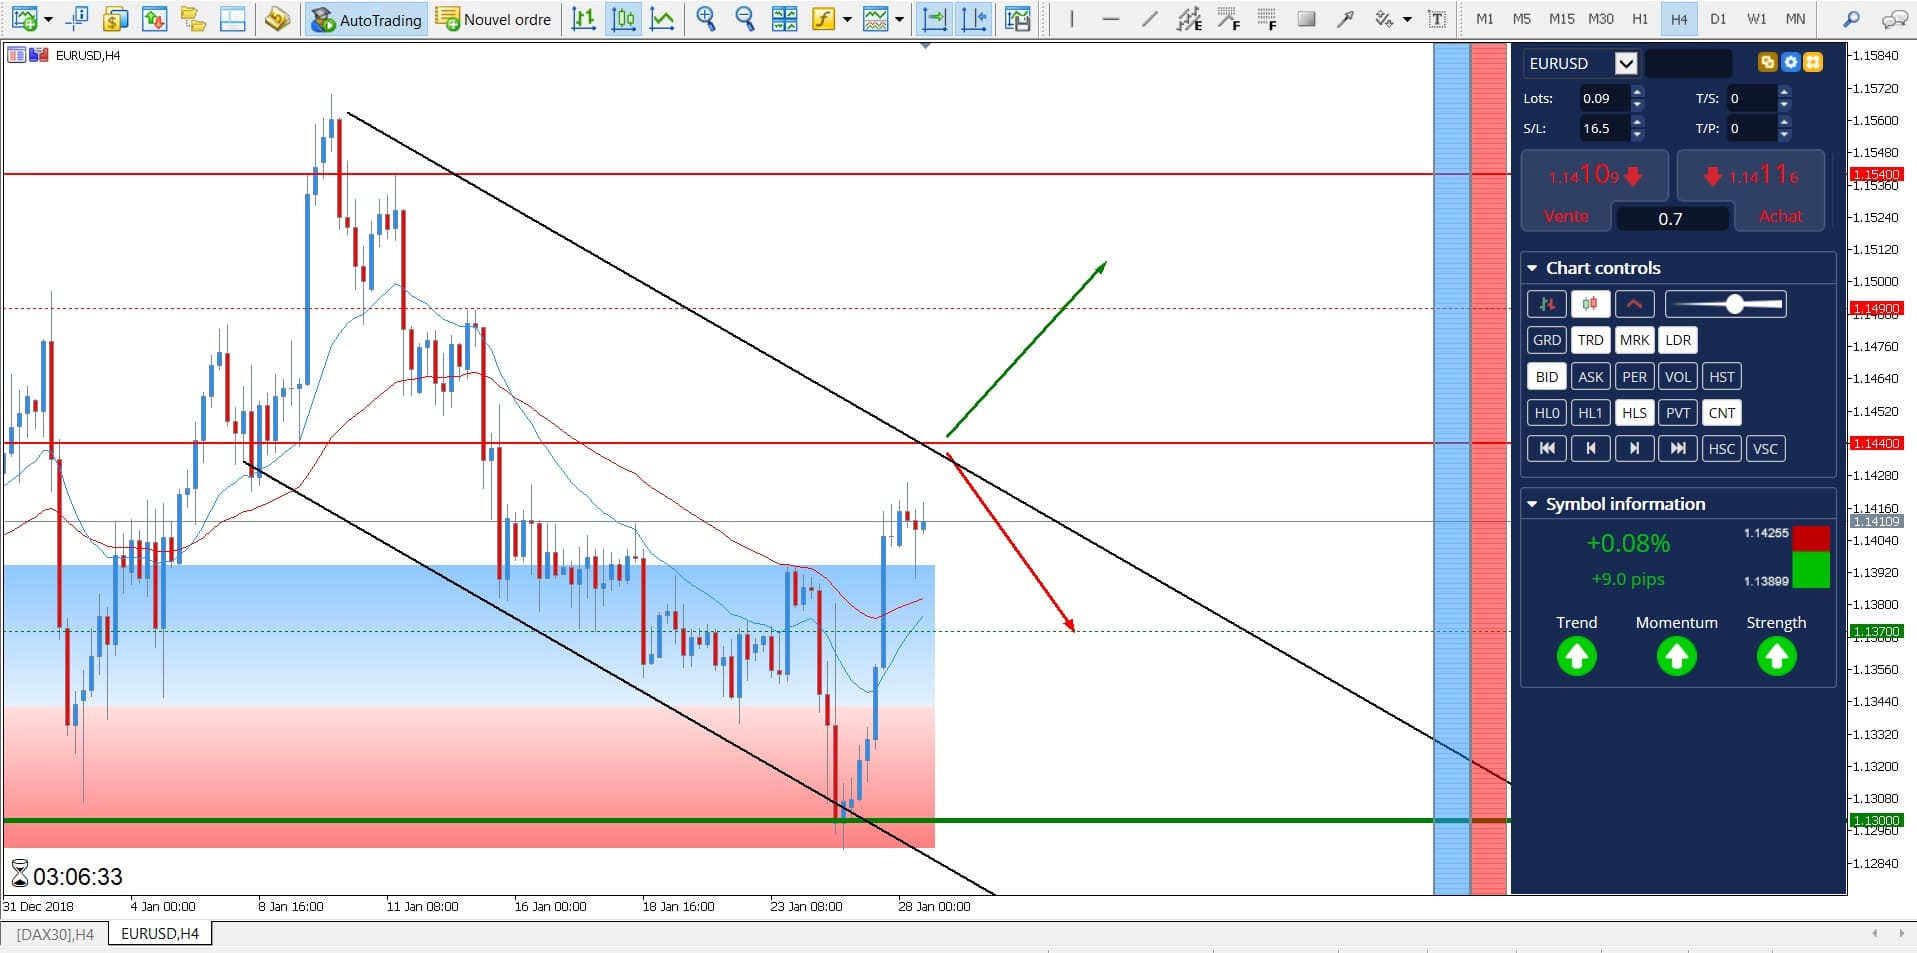 CFD EUR/USD